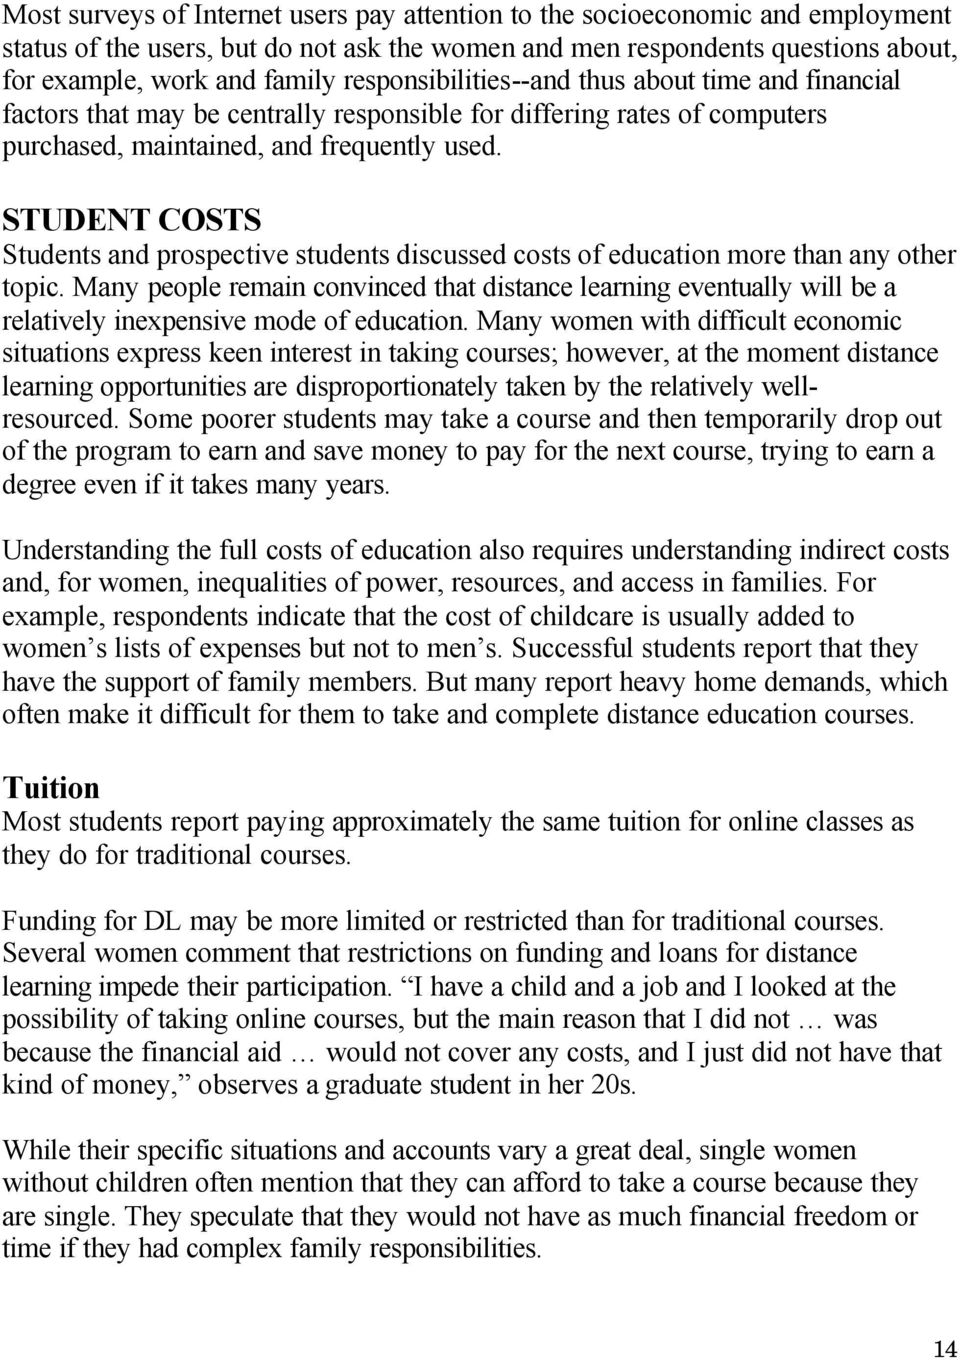 STUDENT COSTS Students and prospective students discussed costs of education more than any other topic.